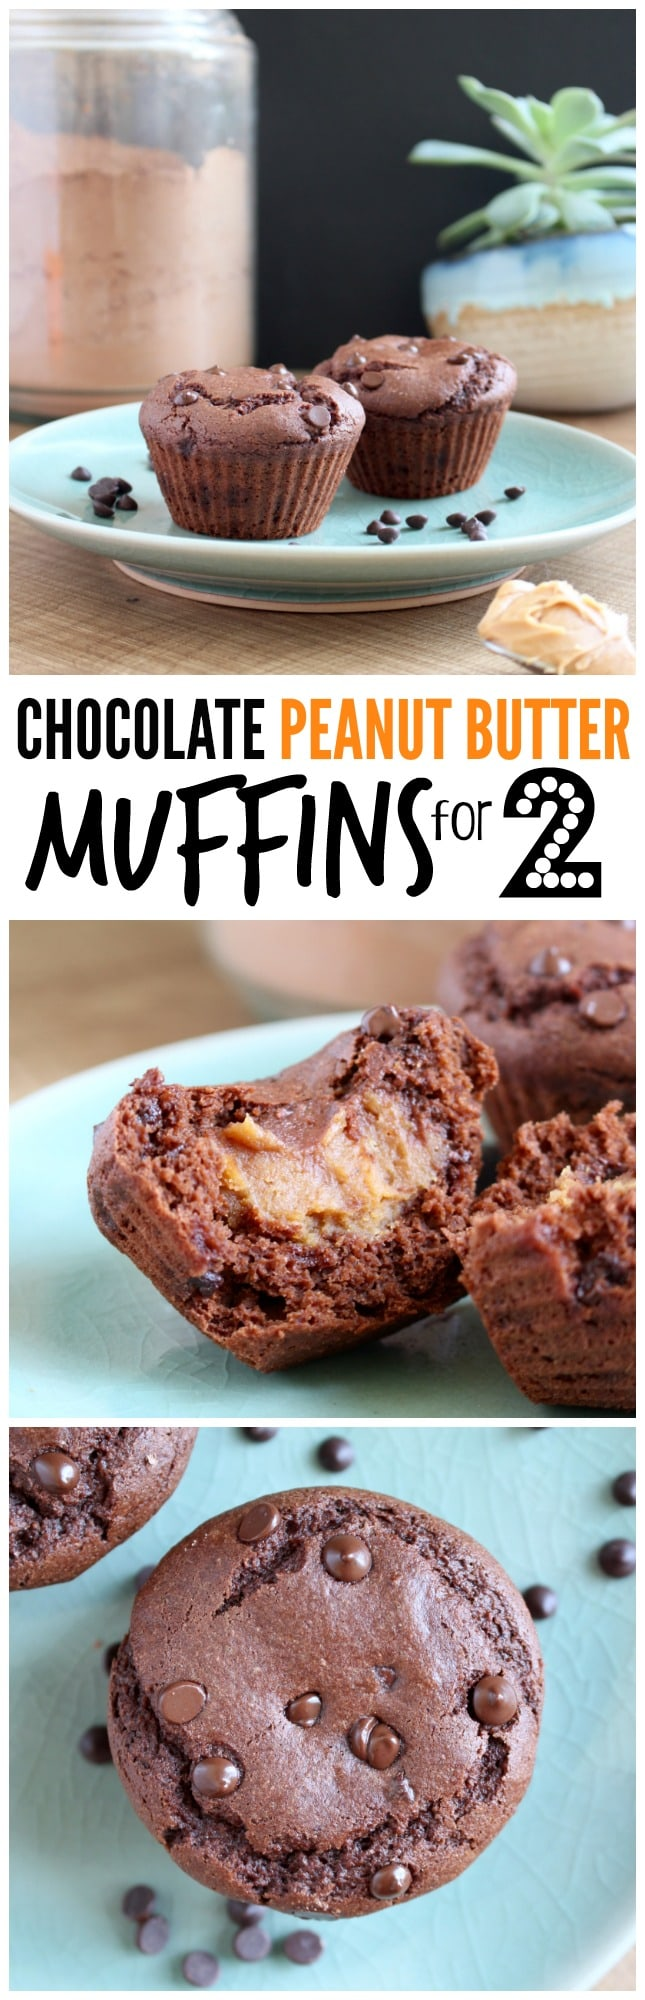 Low Fat Chocolate Peanut Butter Muffins for Two | The ...